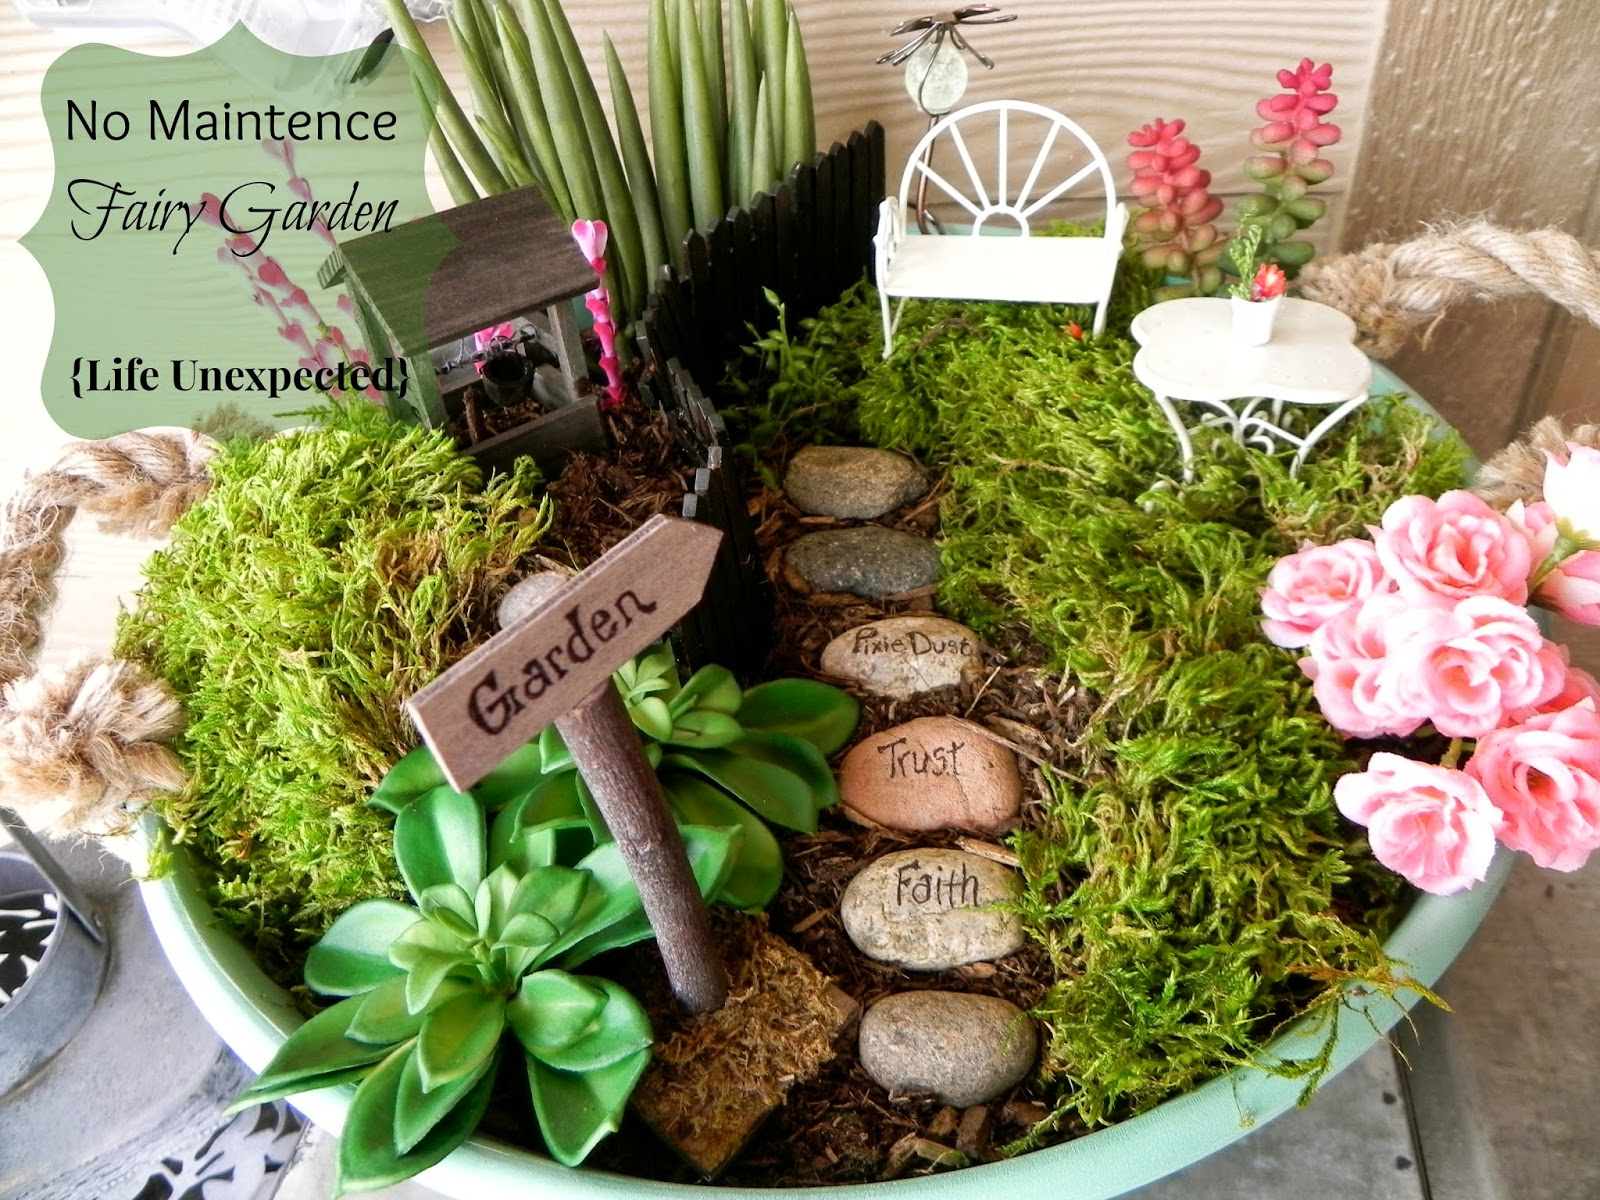 Life Unexpected No Maintenance Fairy Garden